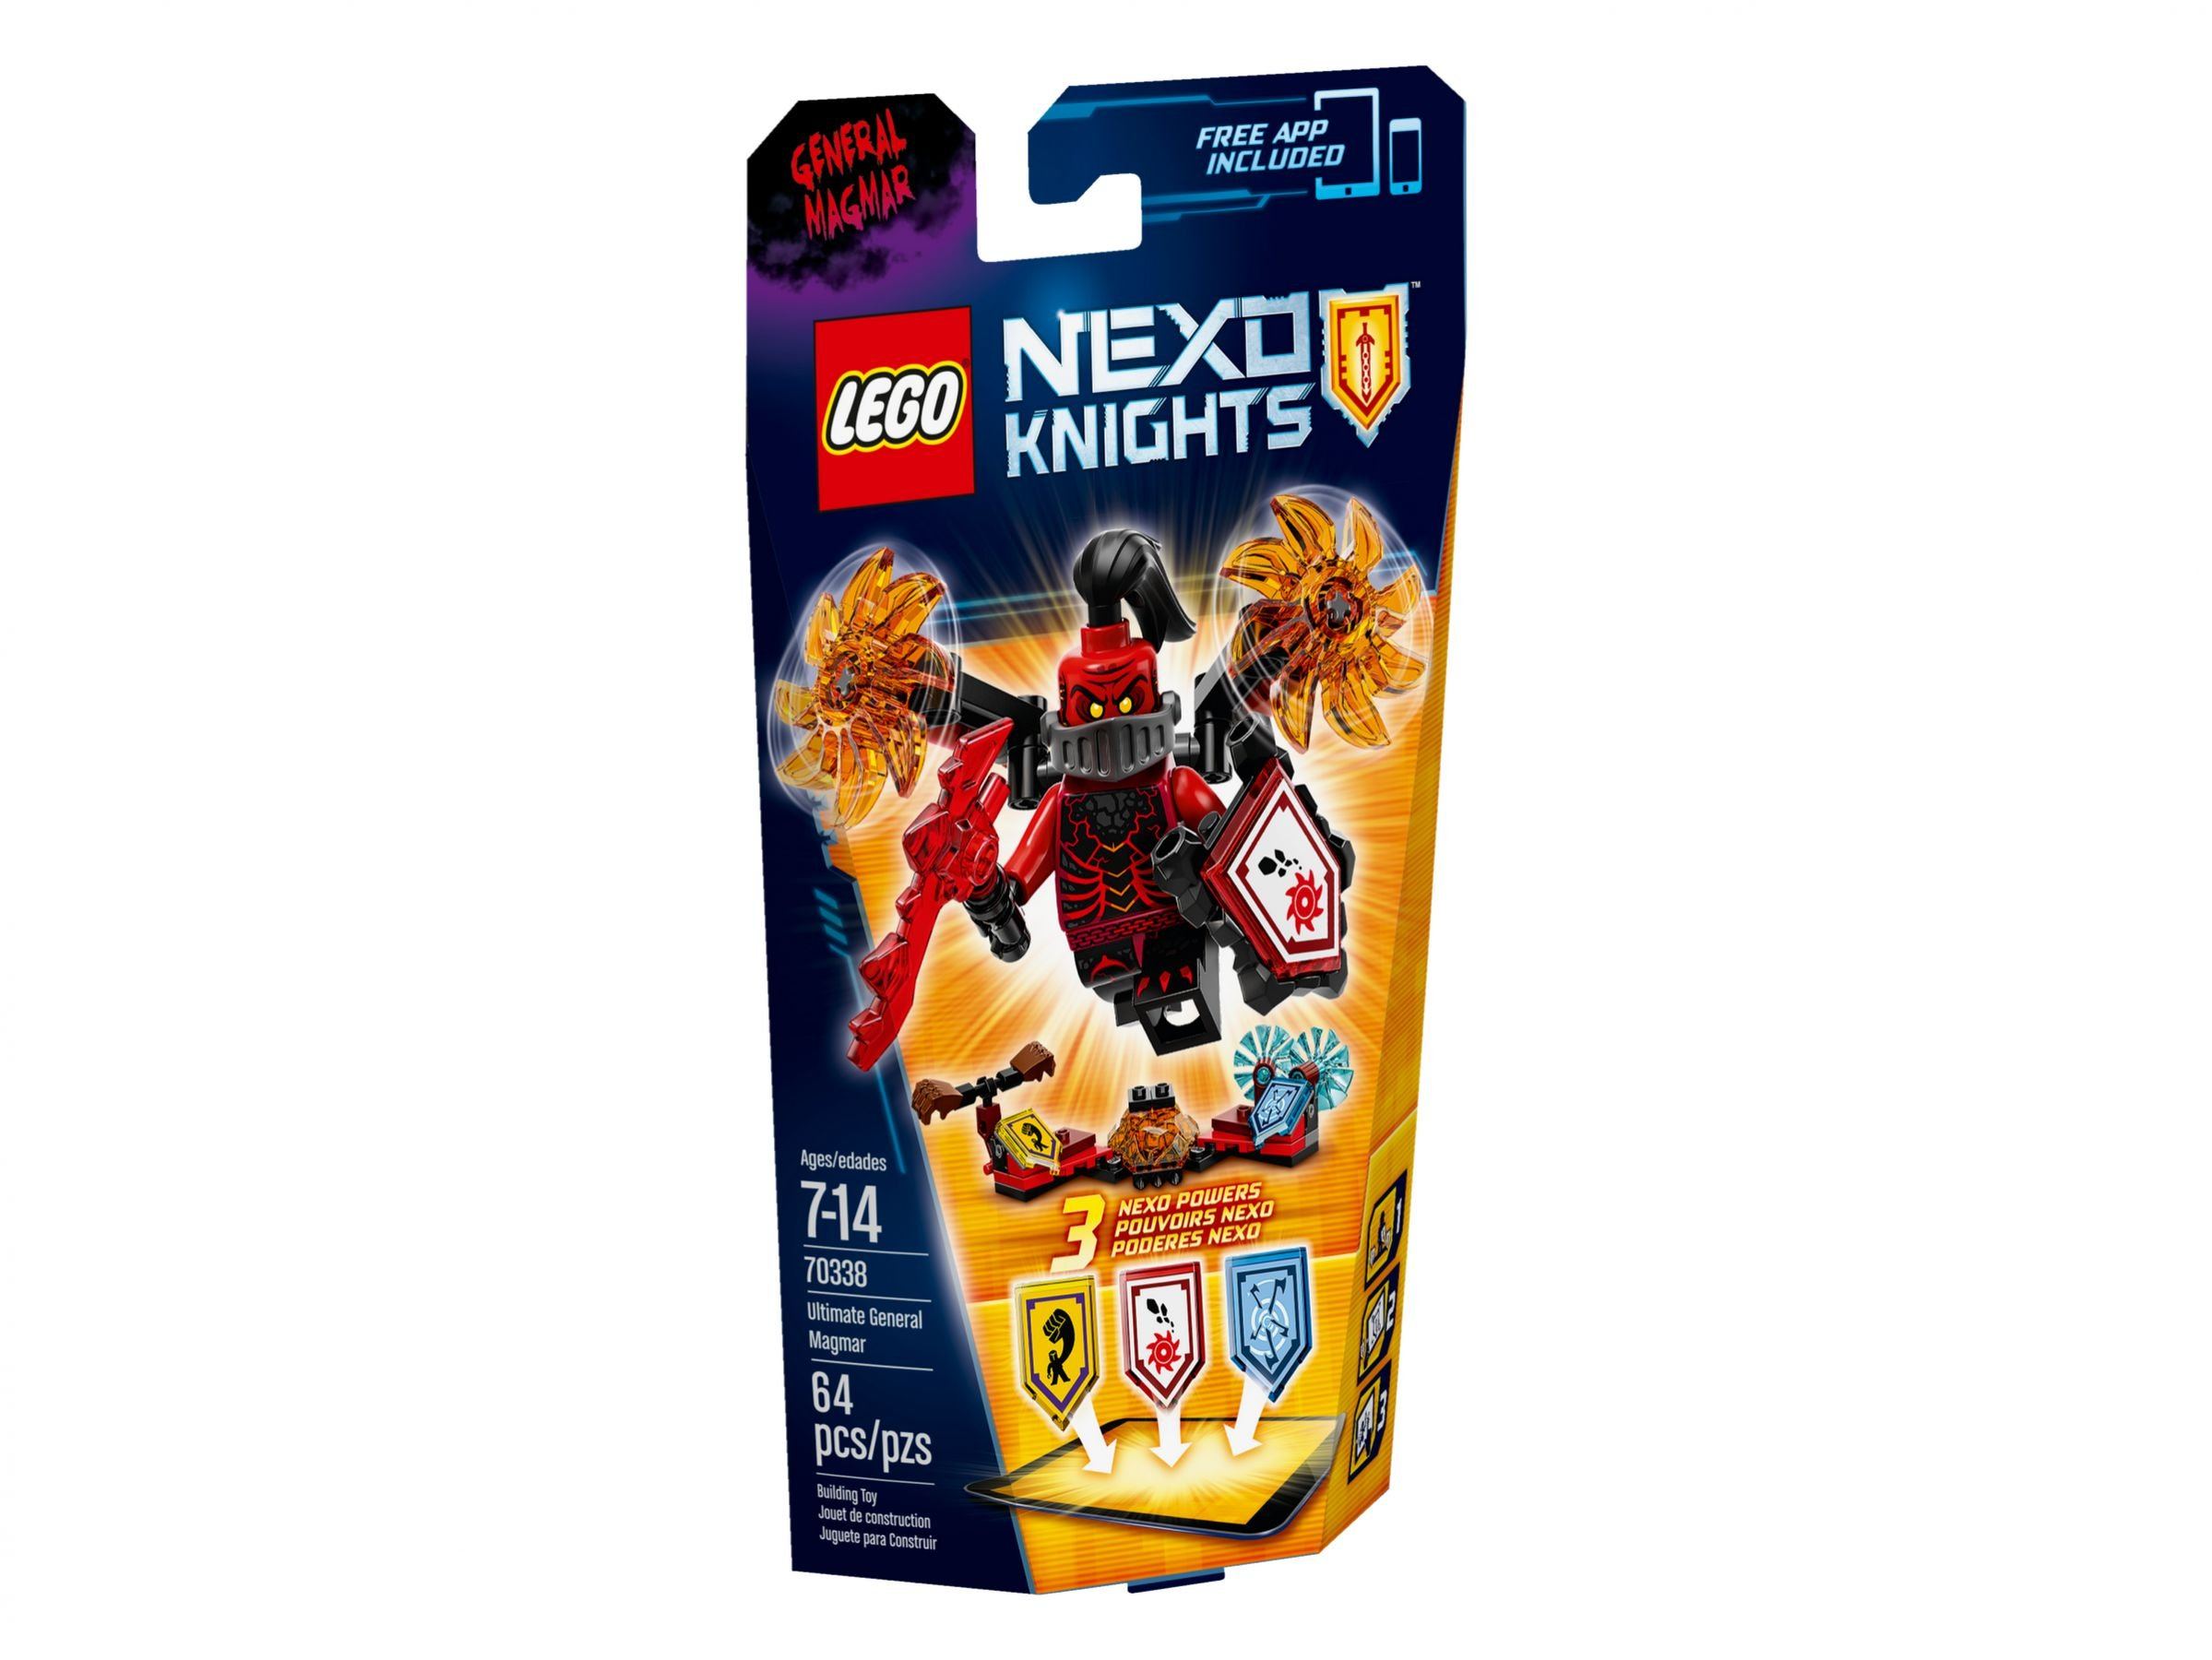 LEGO Nexo Knights 70338 Ultimativer General Magmar LEGO_70338_alt1.jpg